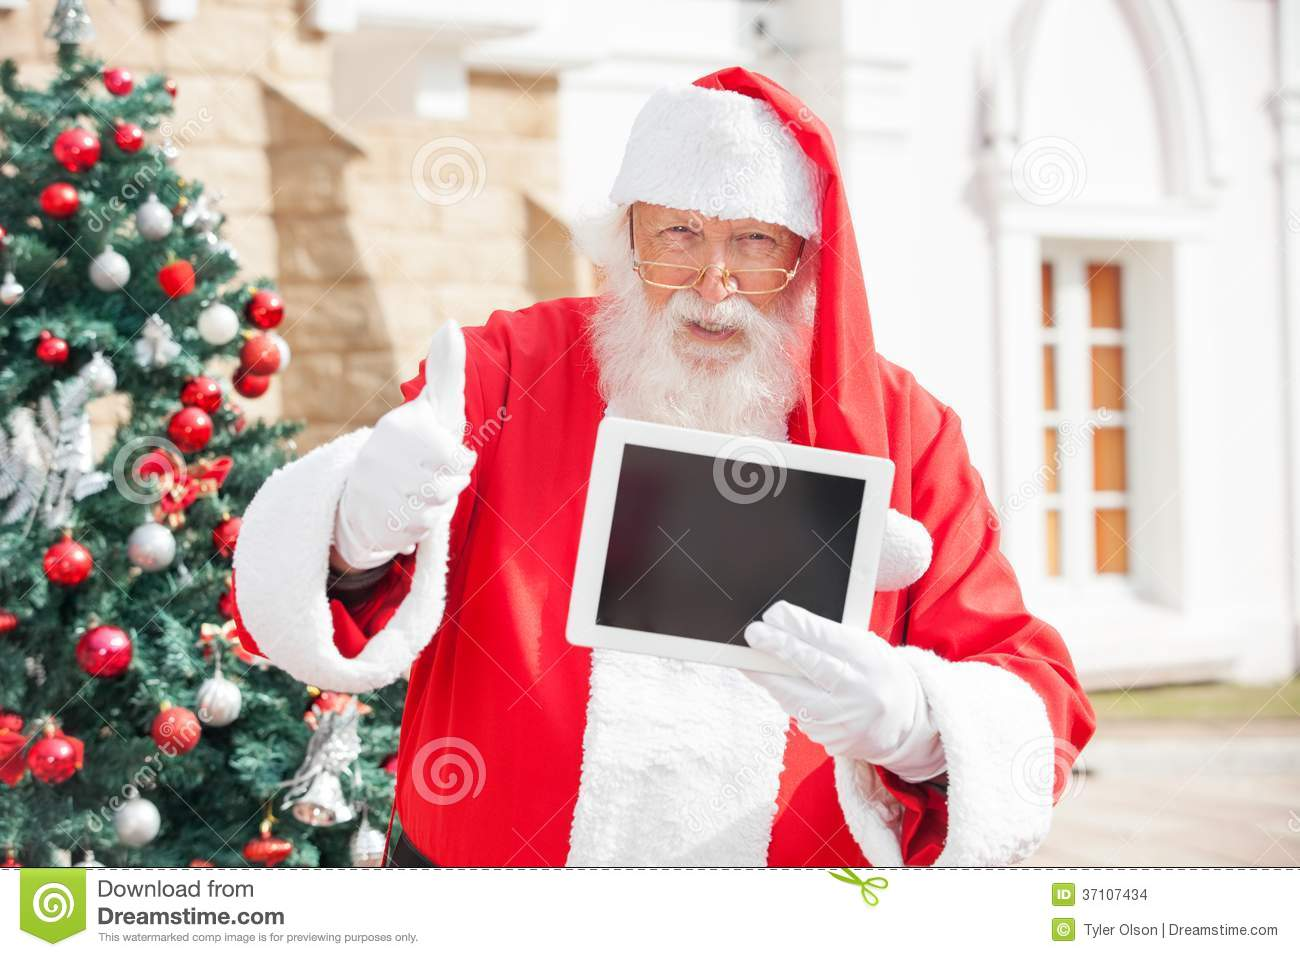 Santa Claus Gesturing Thumbsup While Holding